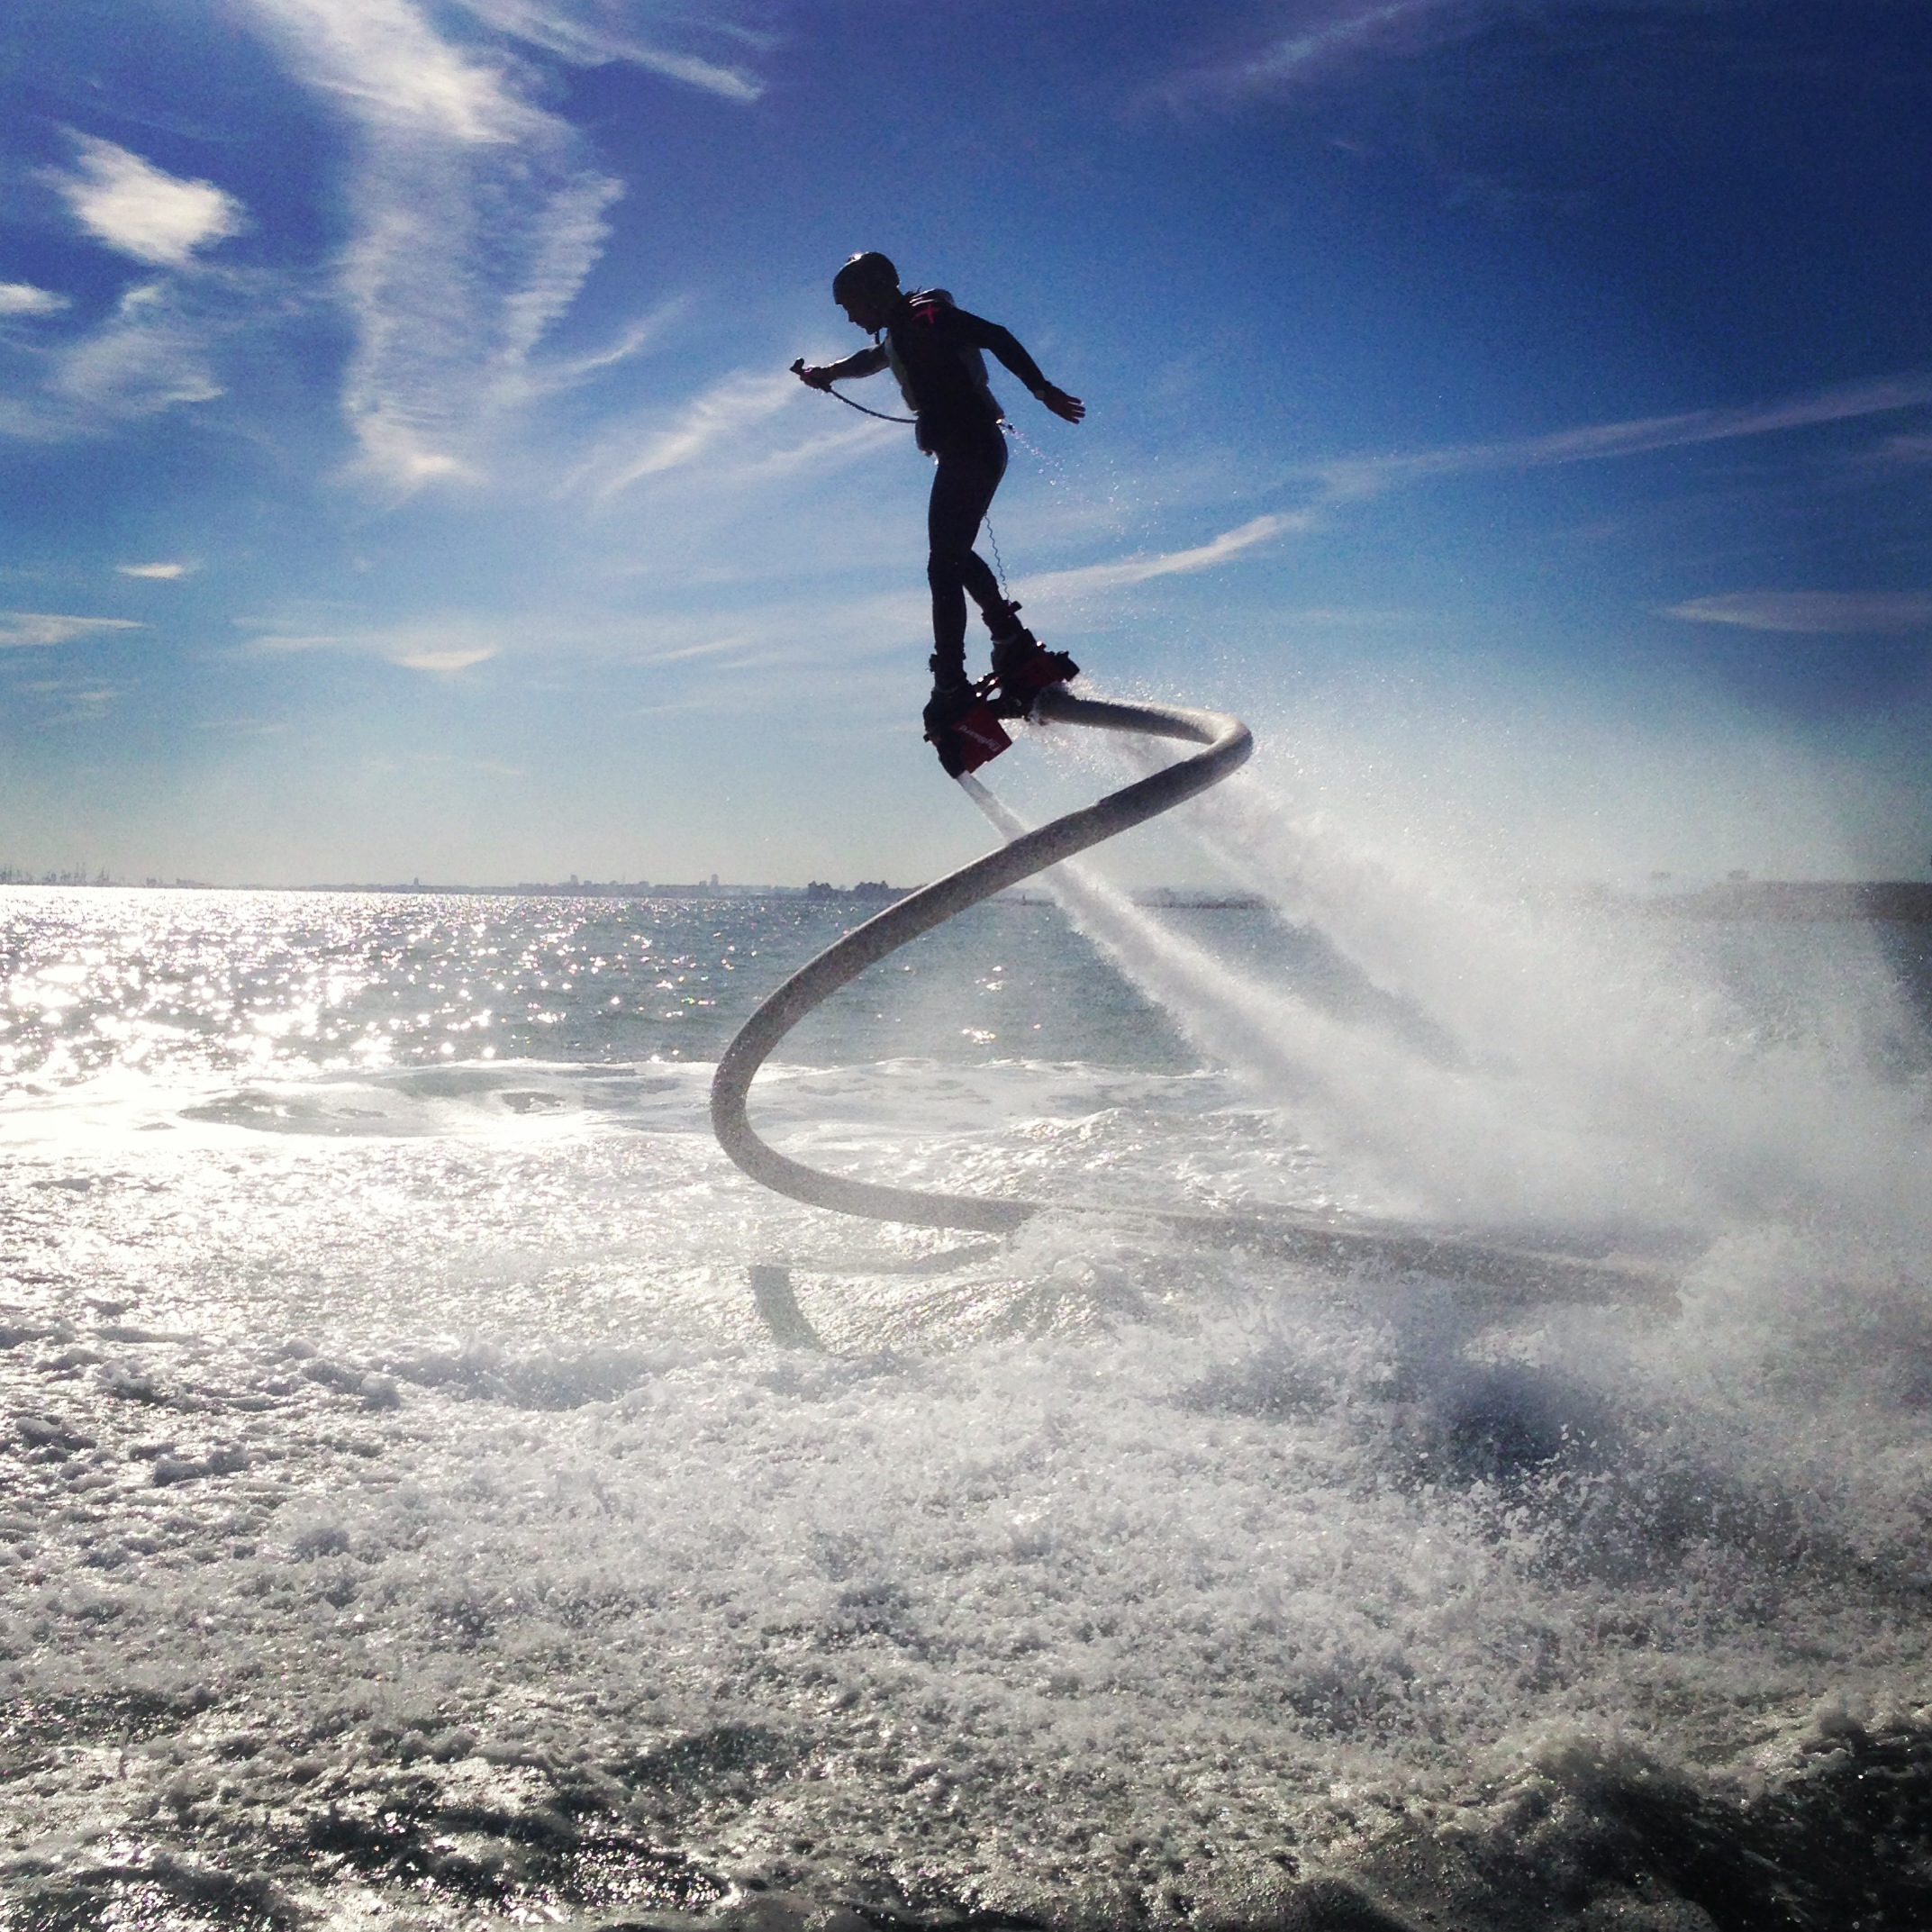 Zapata Racing's Flyboard in action